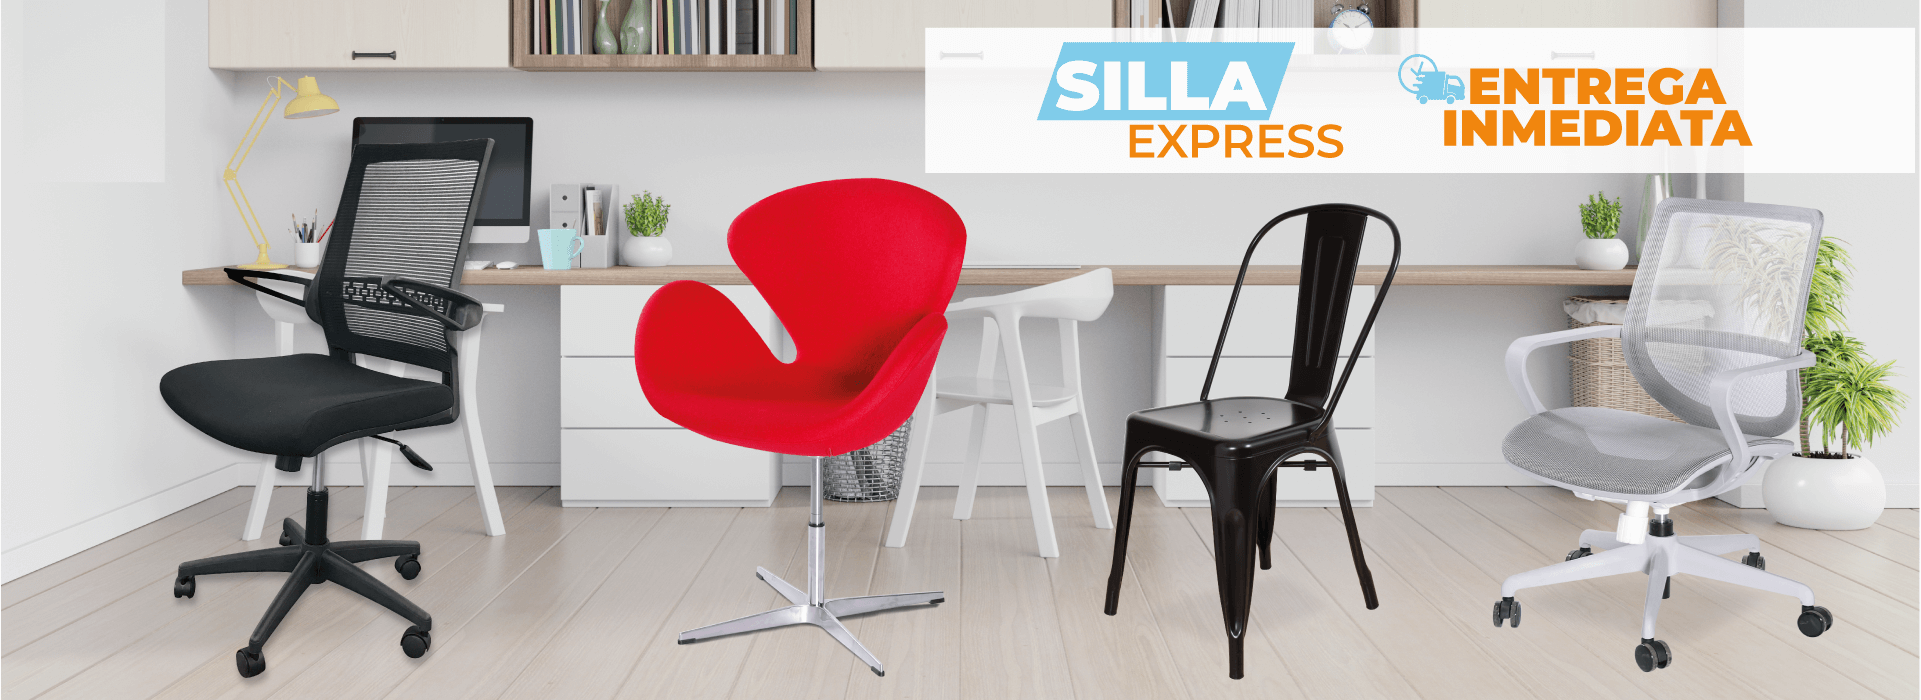 Silla Express - New Office Design